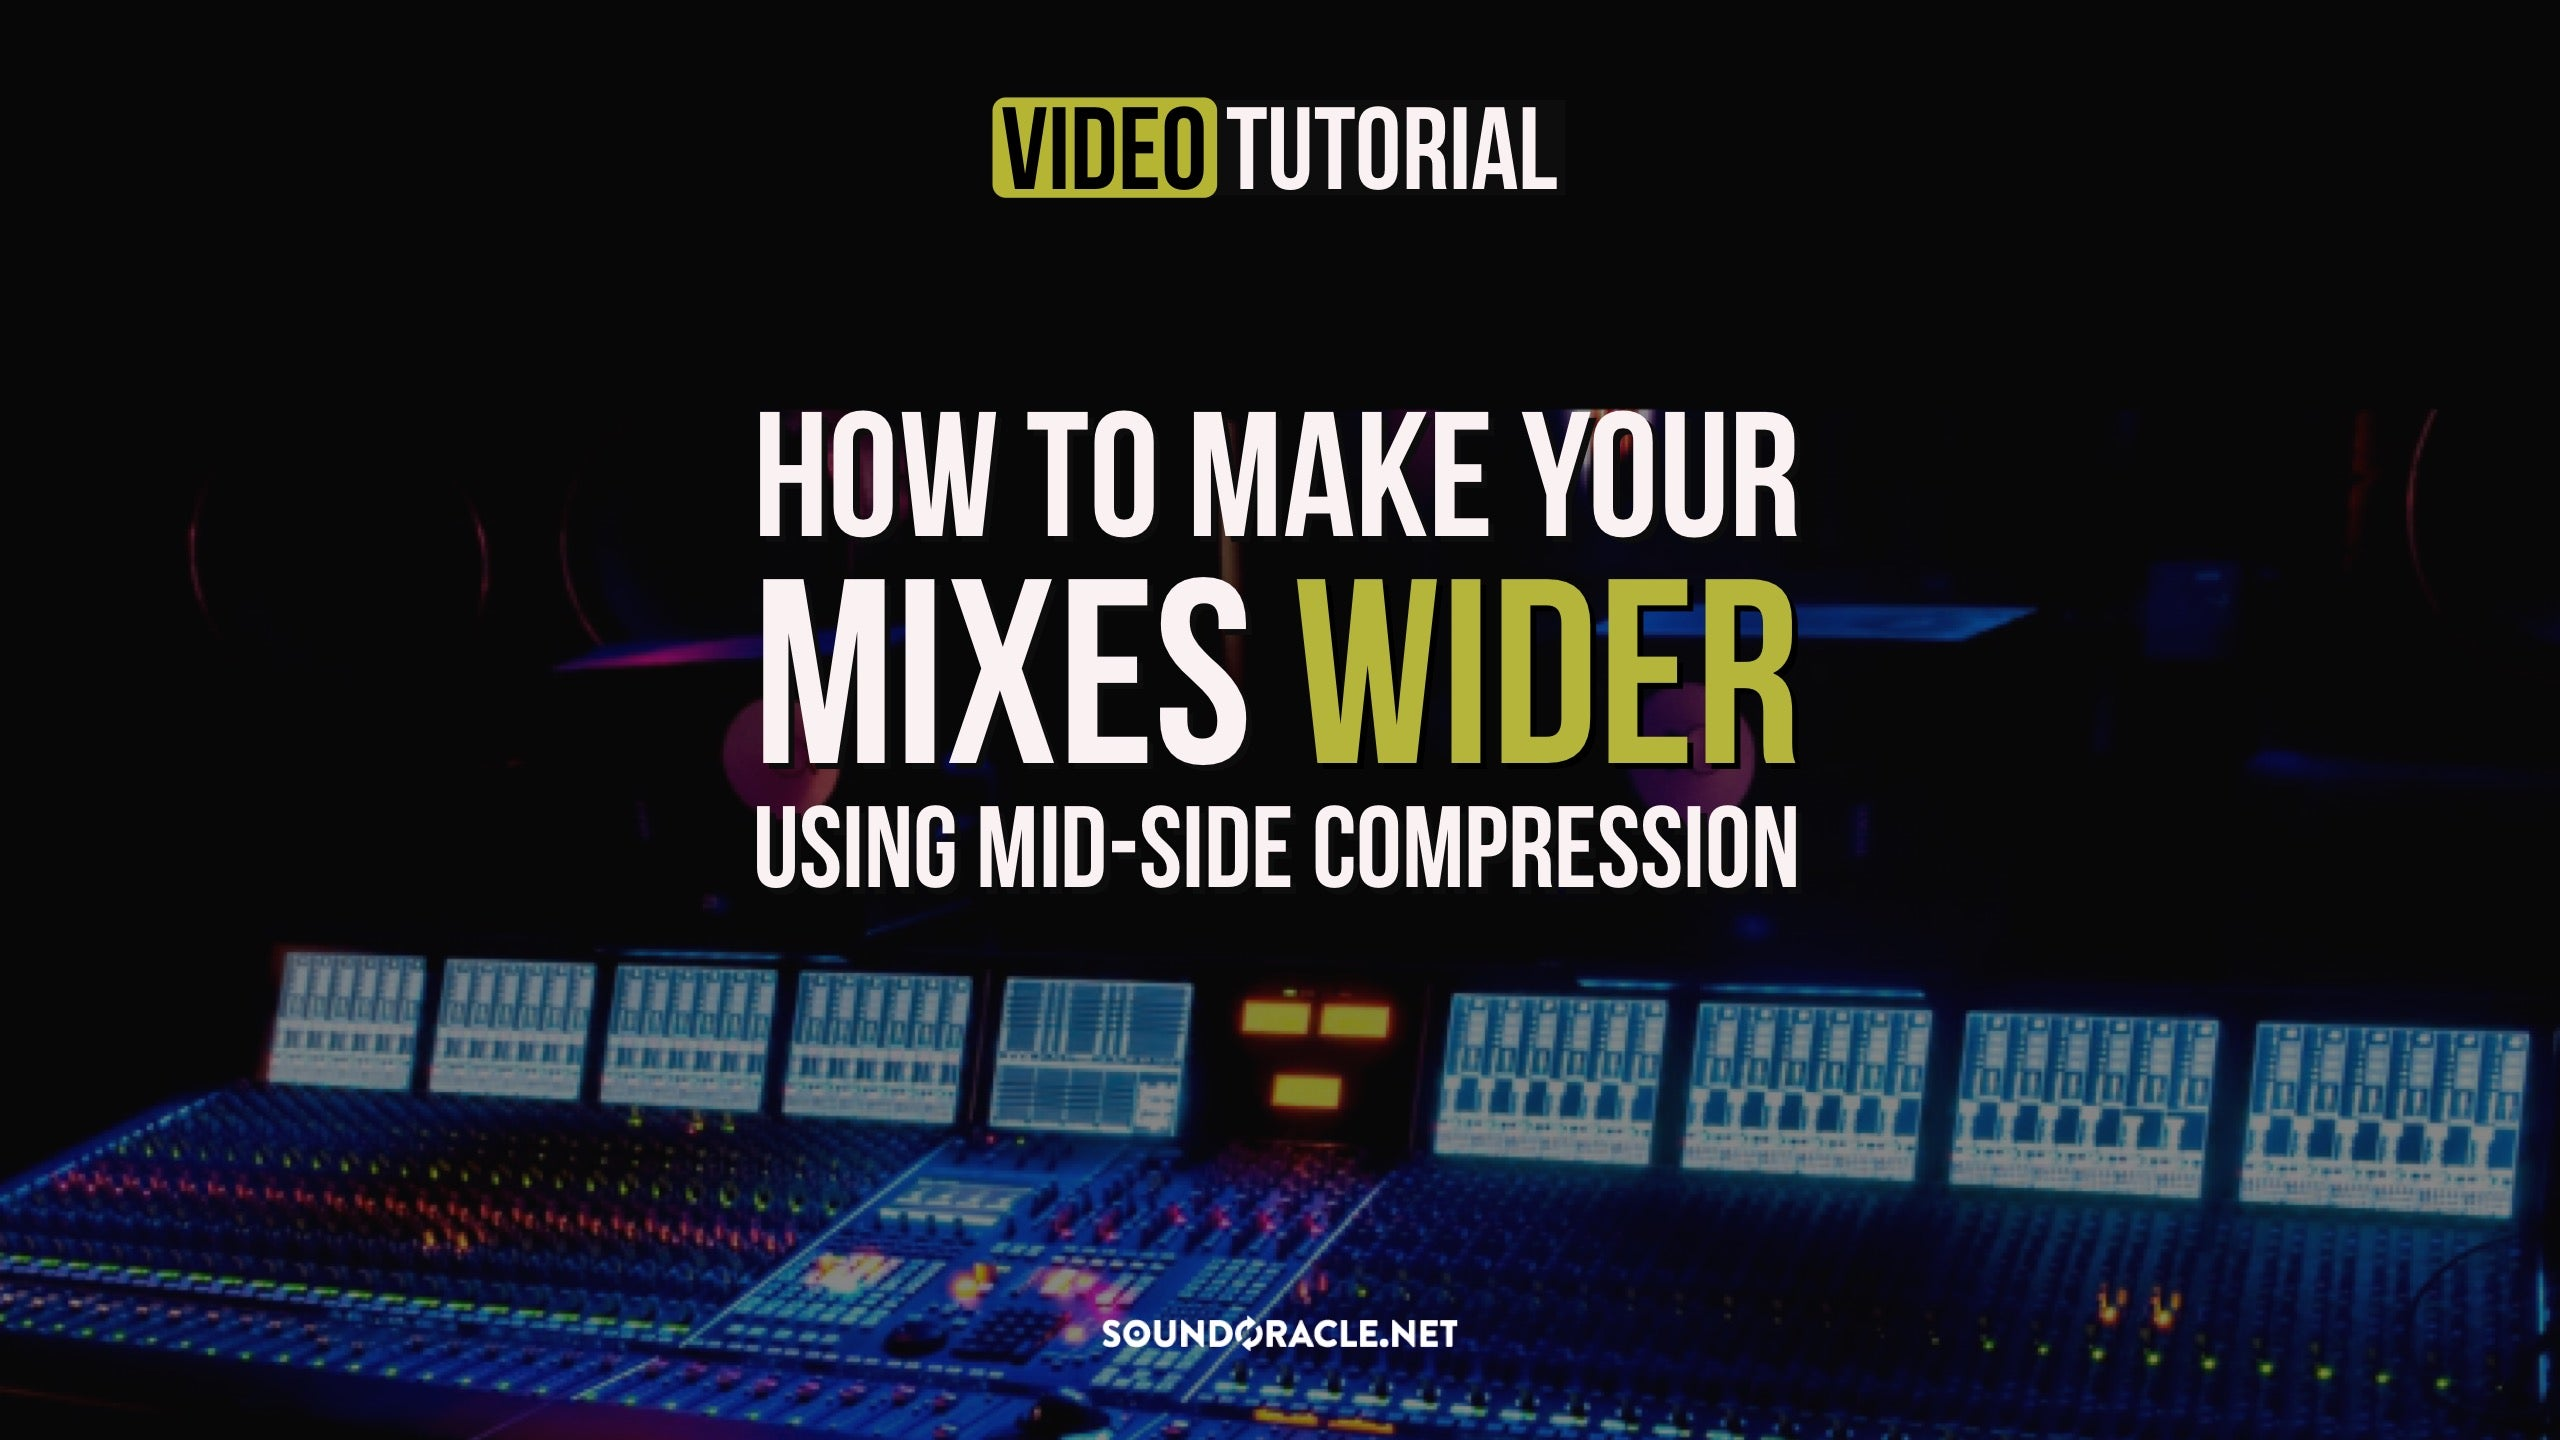 Tutorial | How To Make Your Mixes Wider Using Mid-Side Compression